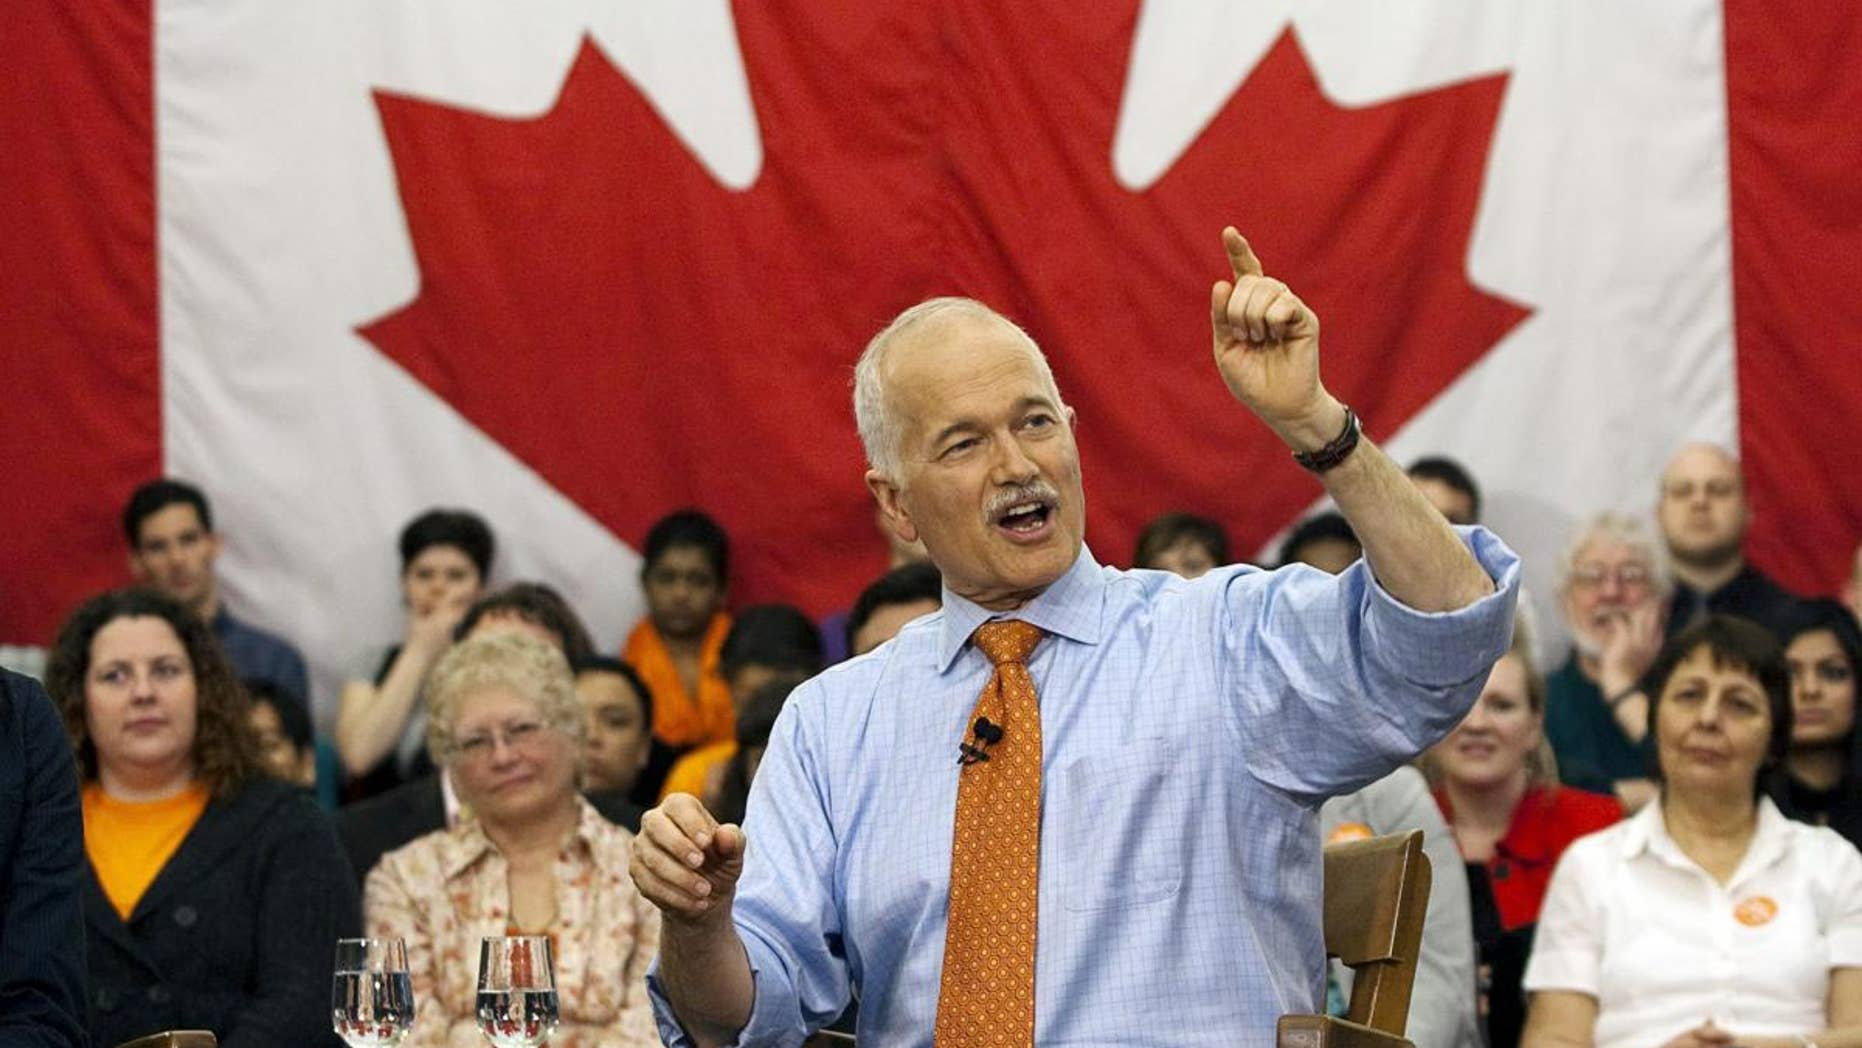 In this April 26, 2011 photo, New Democratic Party Leader Jack Layton fields a question at a town hall. (AP Photo/The Canadian Press, Andrew Vaughan, File)